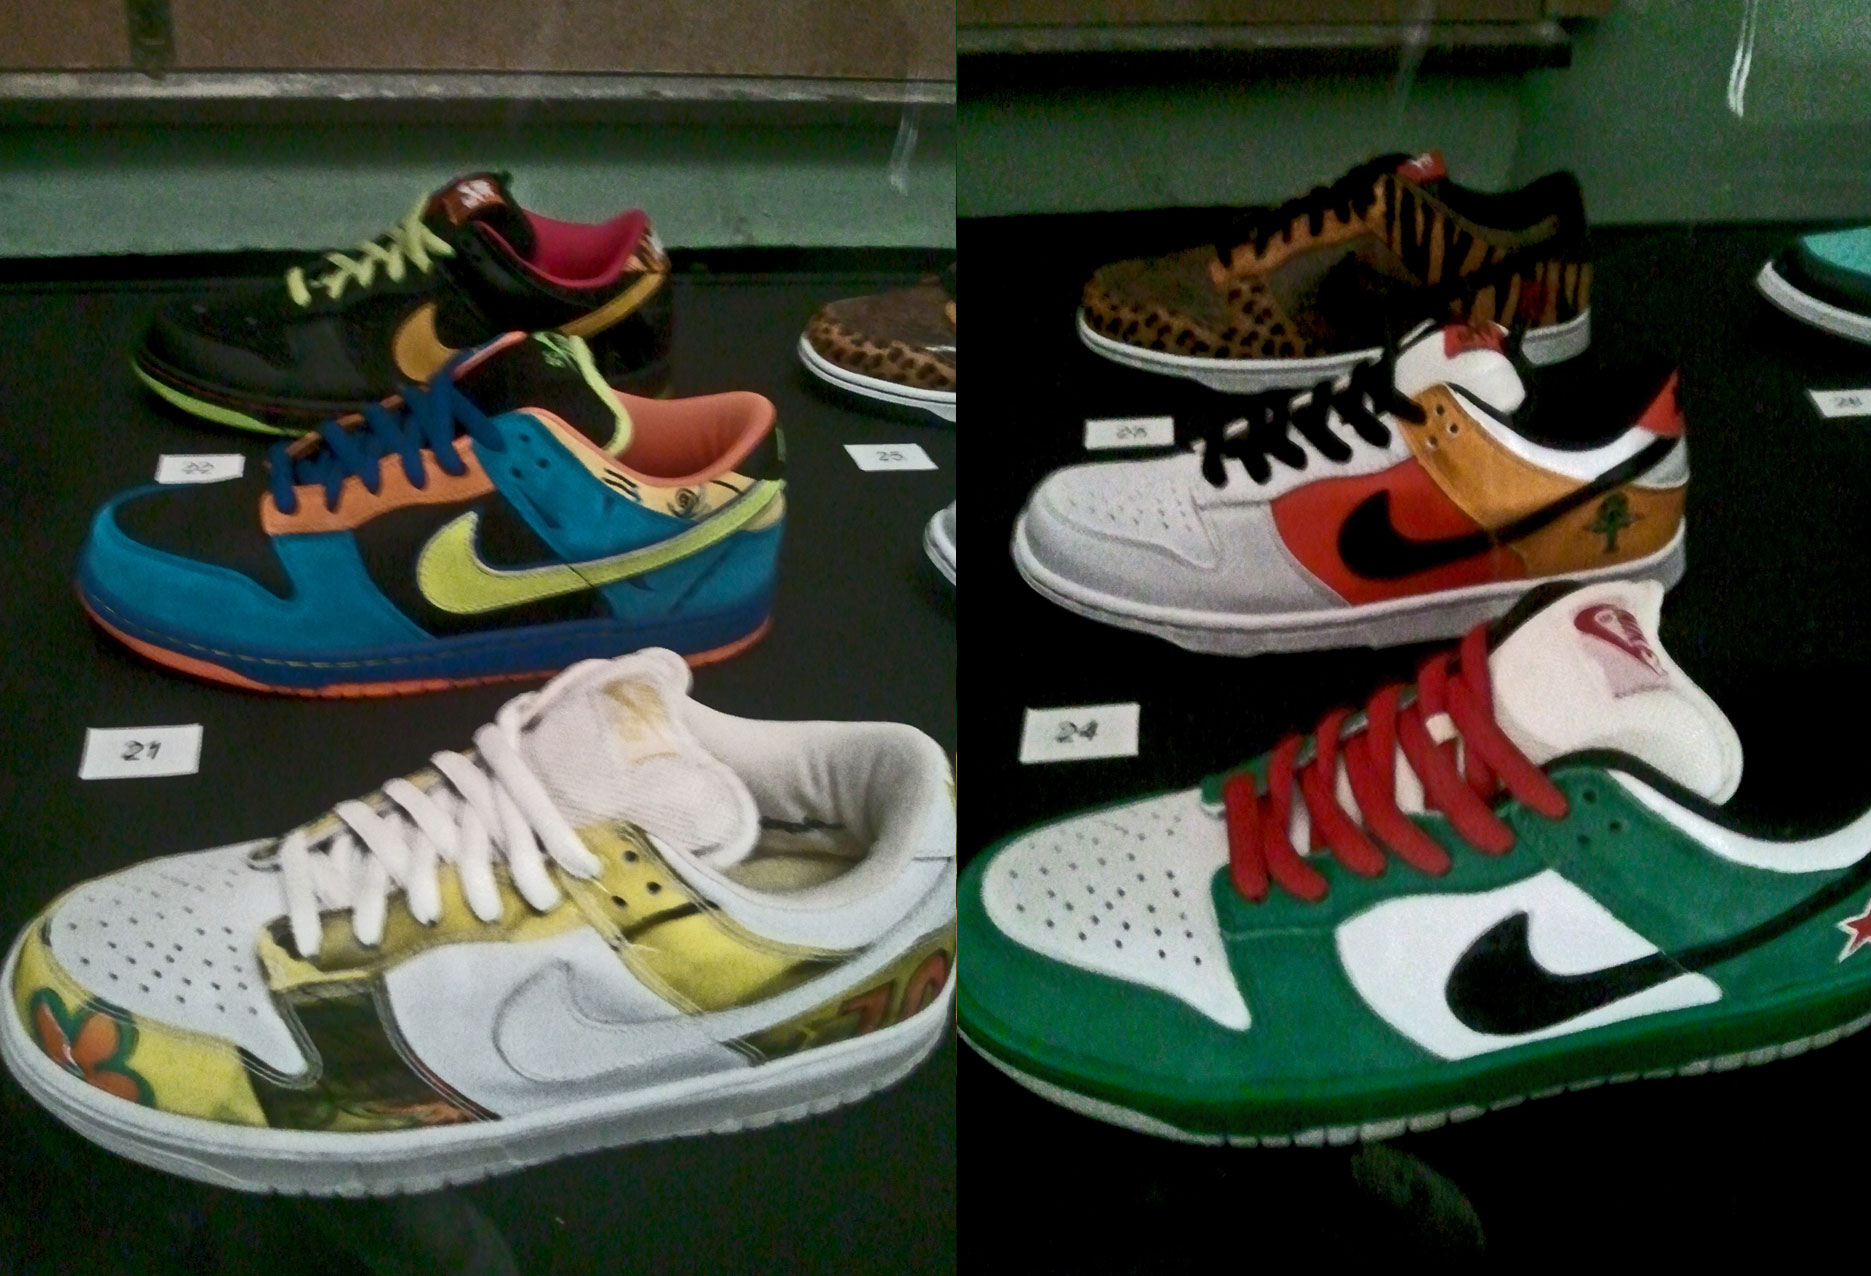 Dunk Low Pro SB De La Soul, Dunk Low Pro SB Skate or Die, Dunk Low SB Space Tiger, Dunk Low Pro SB Heineken, Dunk Low Pro SB Raygun, Dunk Low Animal Edition Safari